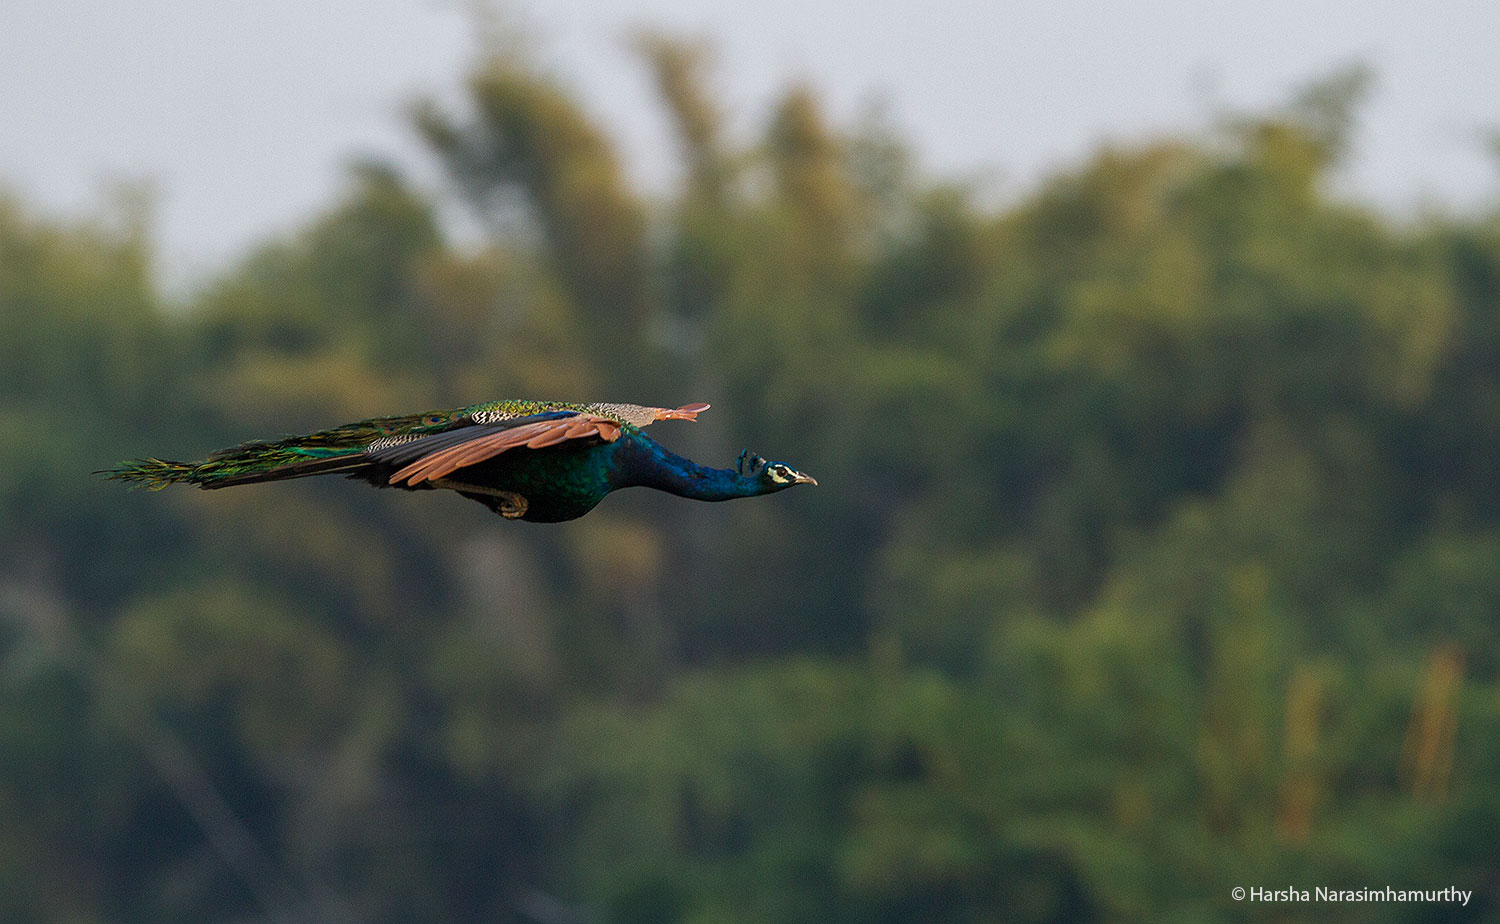 Wildlife Photography: Peacock in Flight, Ranganathittu